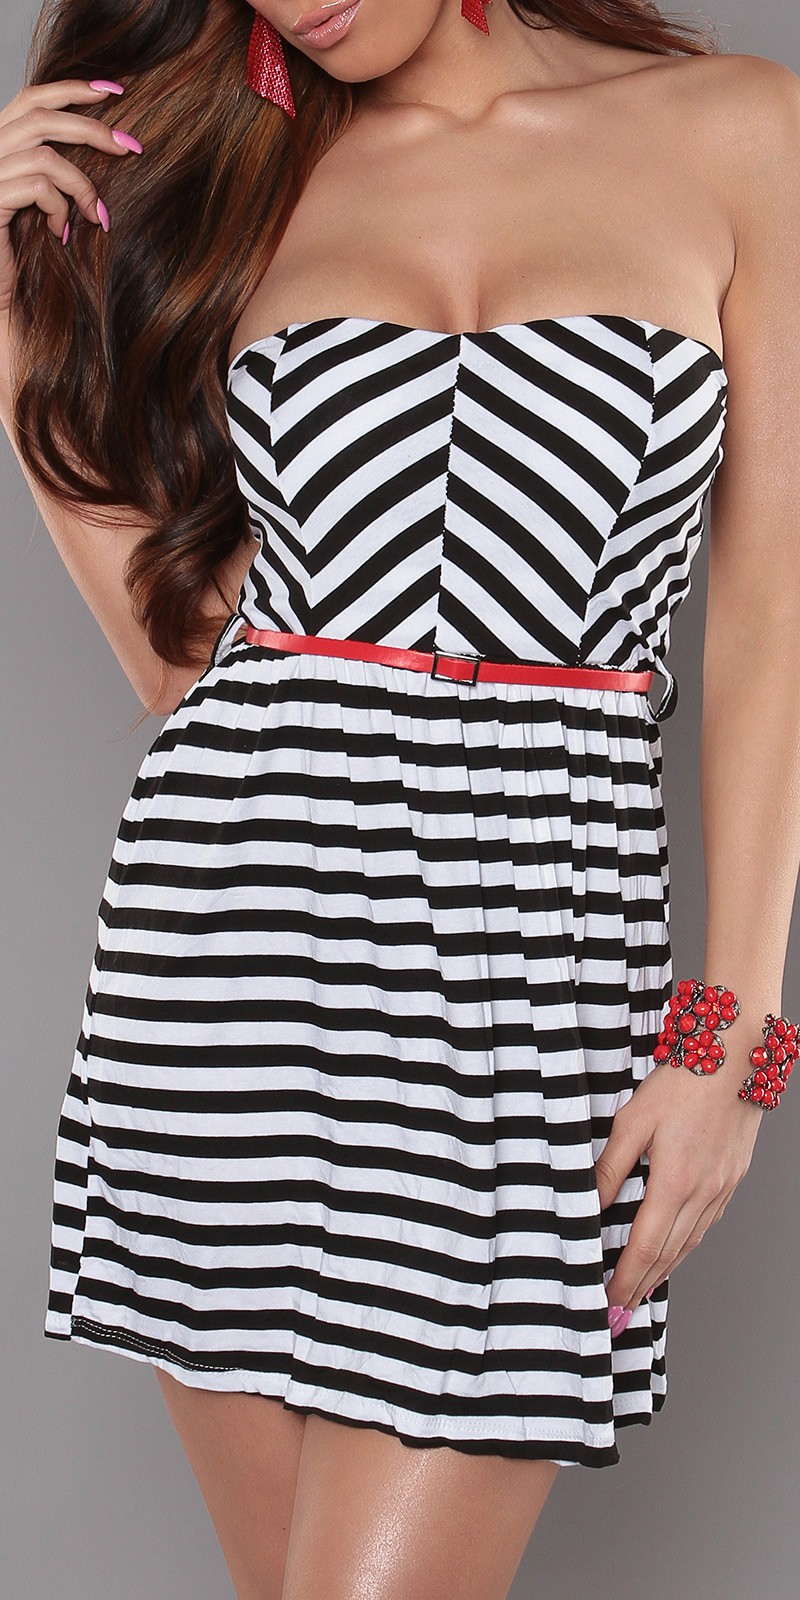 Black Strapless Striped Dress With Red Belt